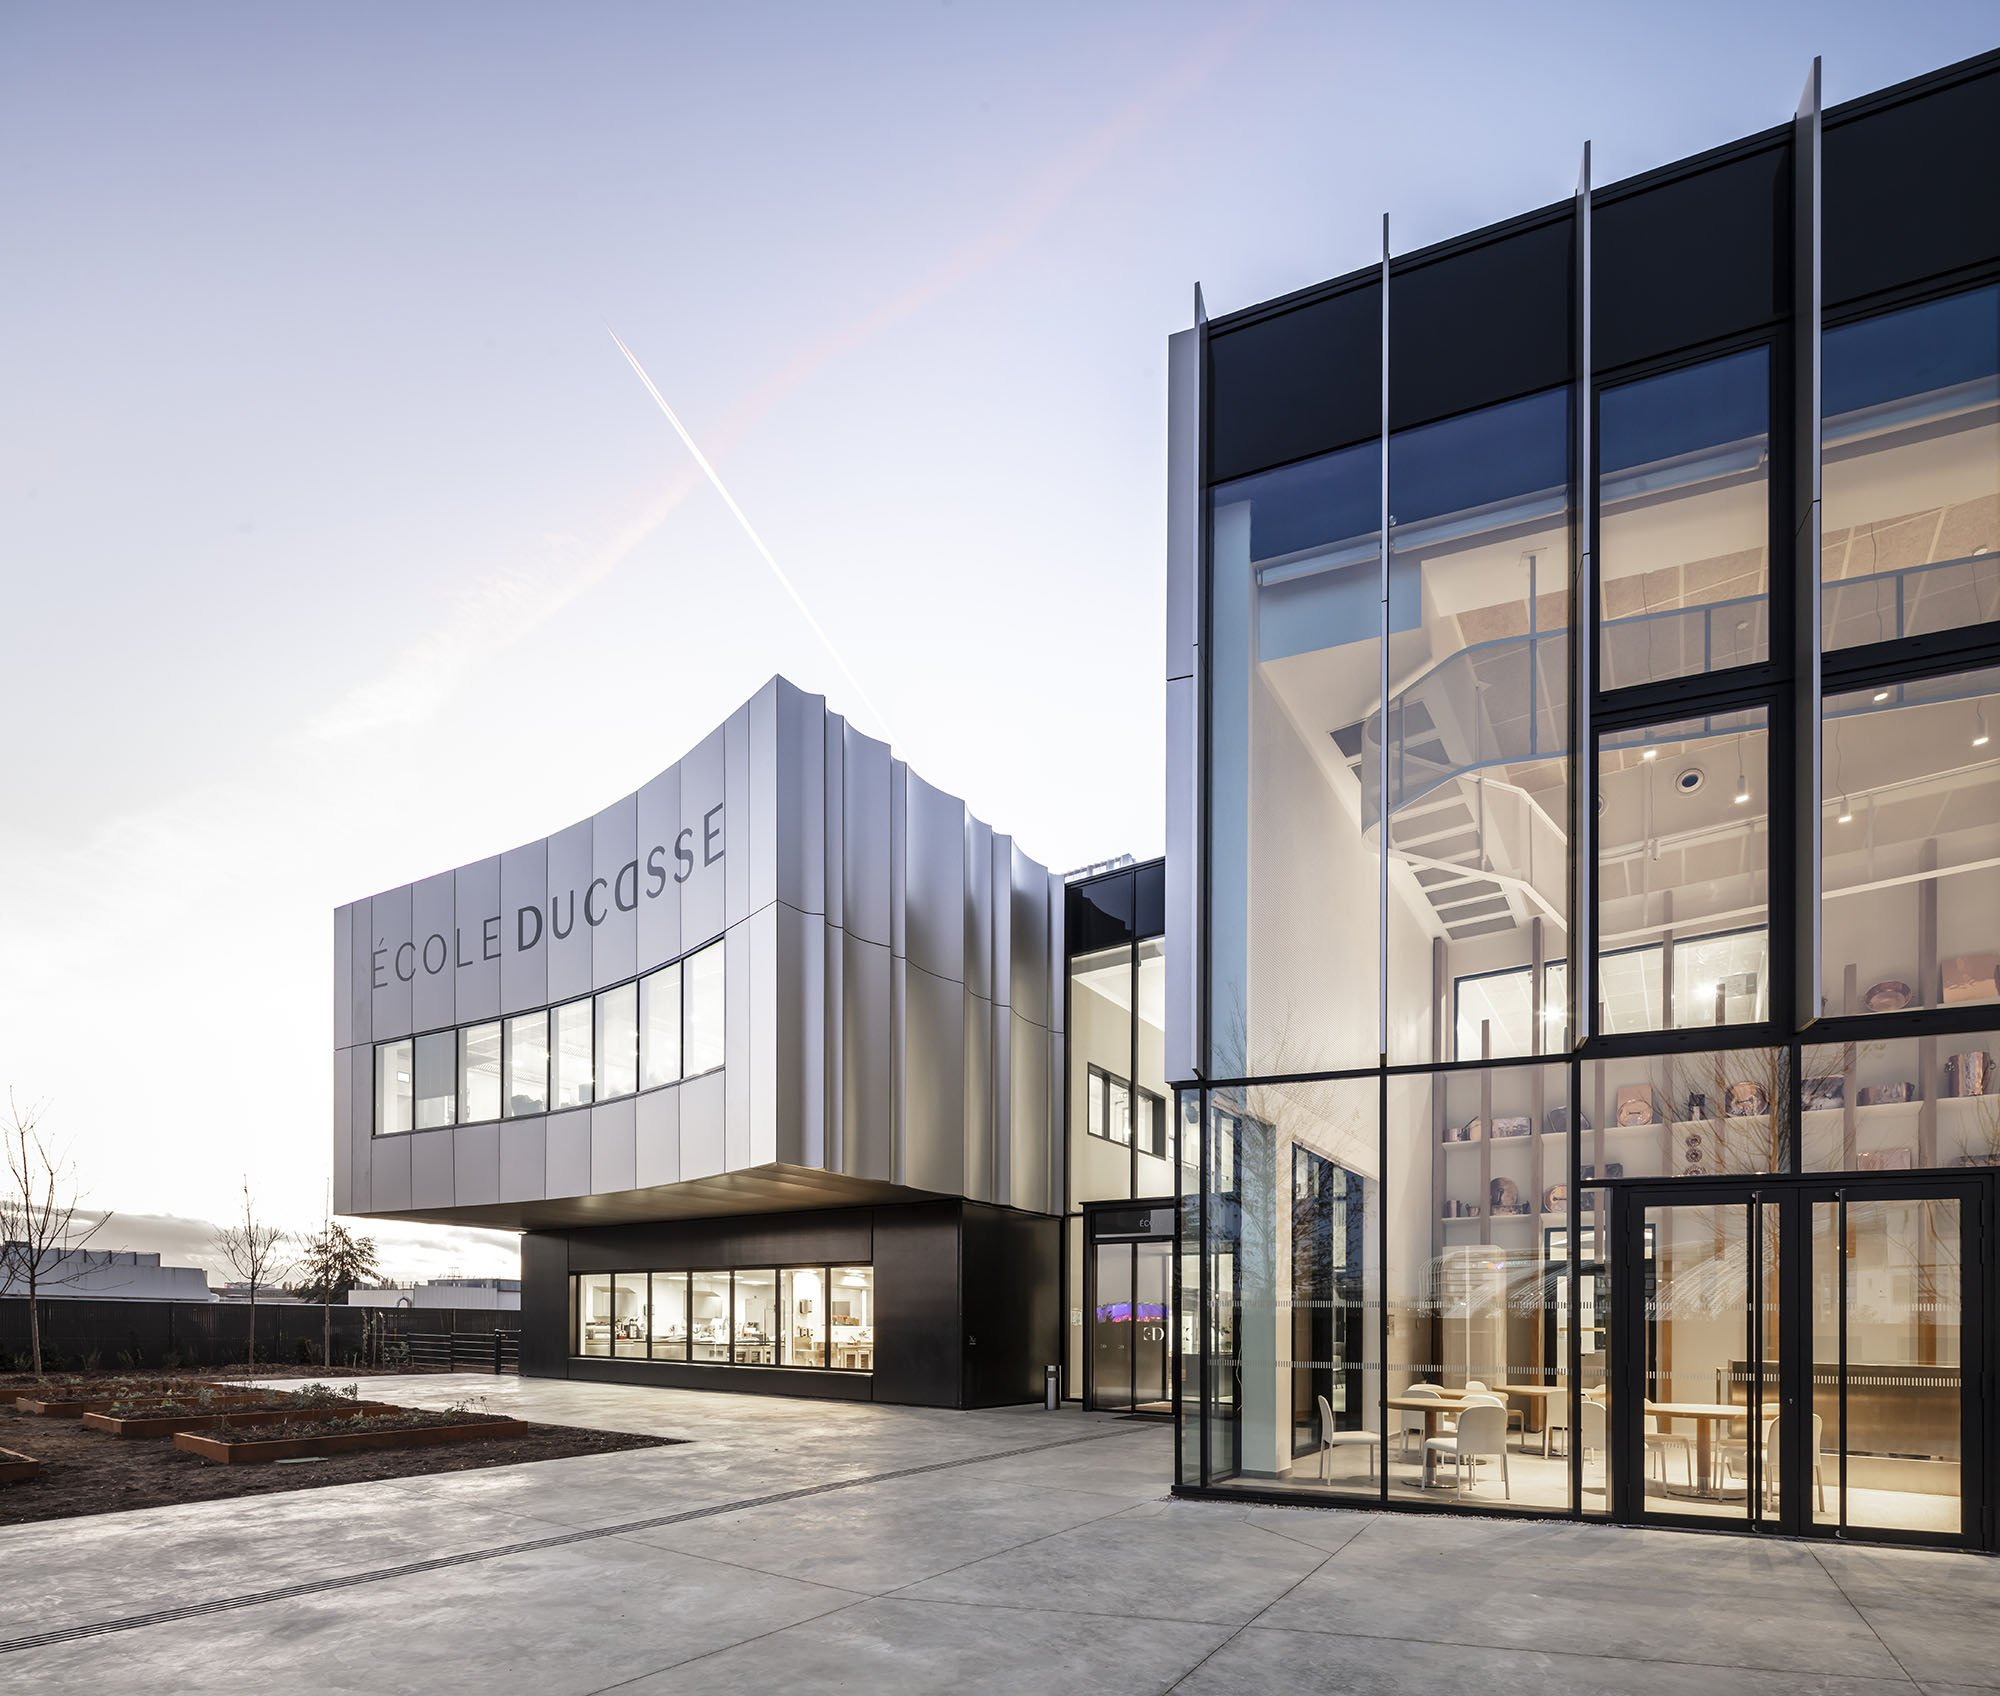 École Ducasse: architecture inspired by the culinary arts